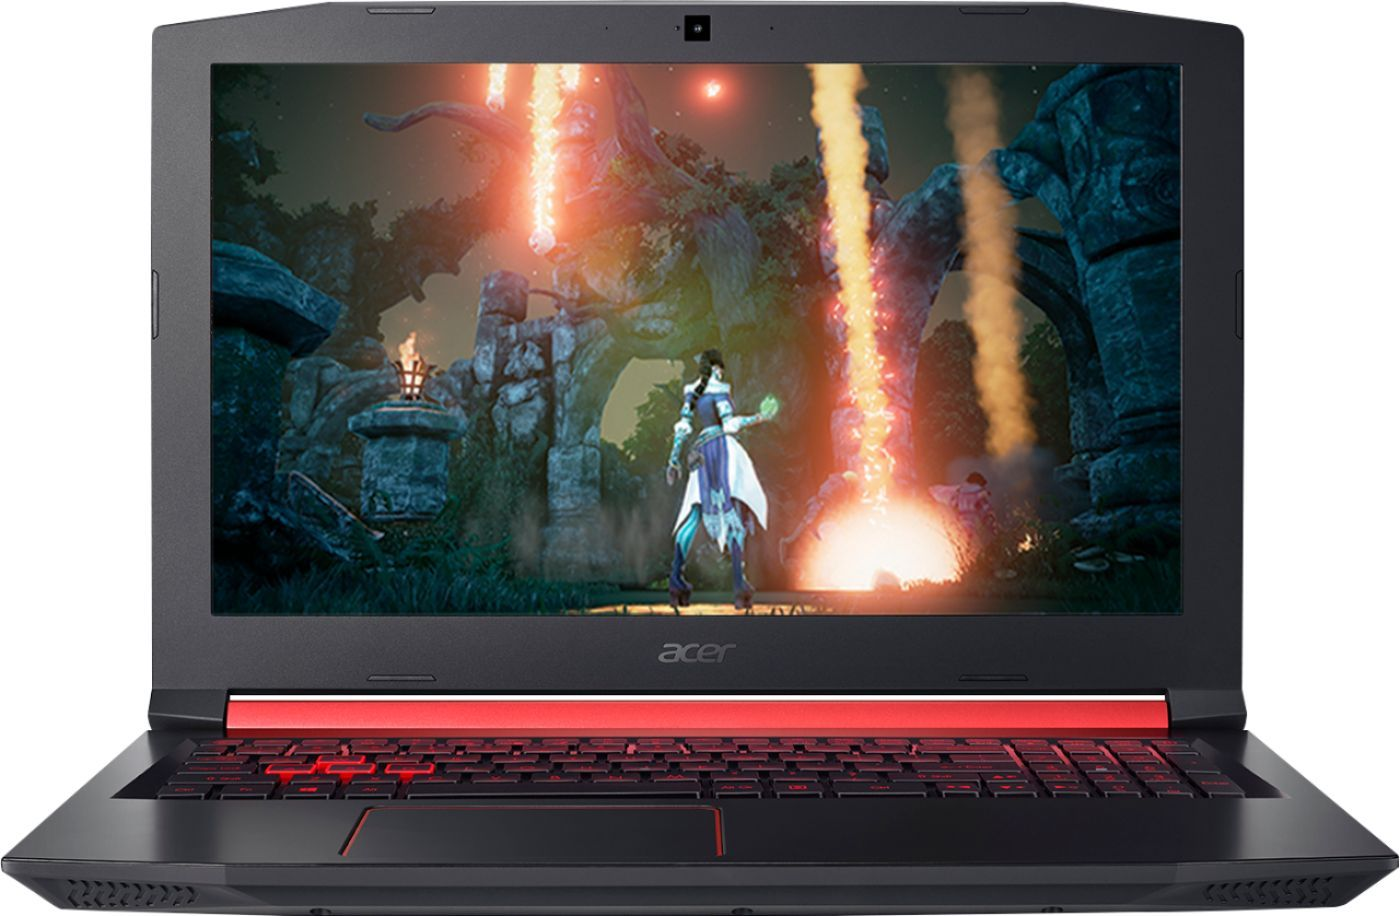 Acer Nitro 5 15 6 Gaming Laptop Amd Ryzen 5 8gb Memory Amd Radeon Rx 560x 1tb Hard Drive Black An515 42 R5ed Gaming Laptops Acer Cool Things To Buy